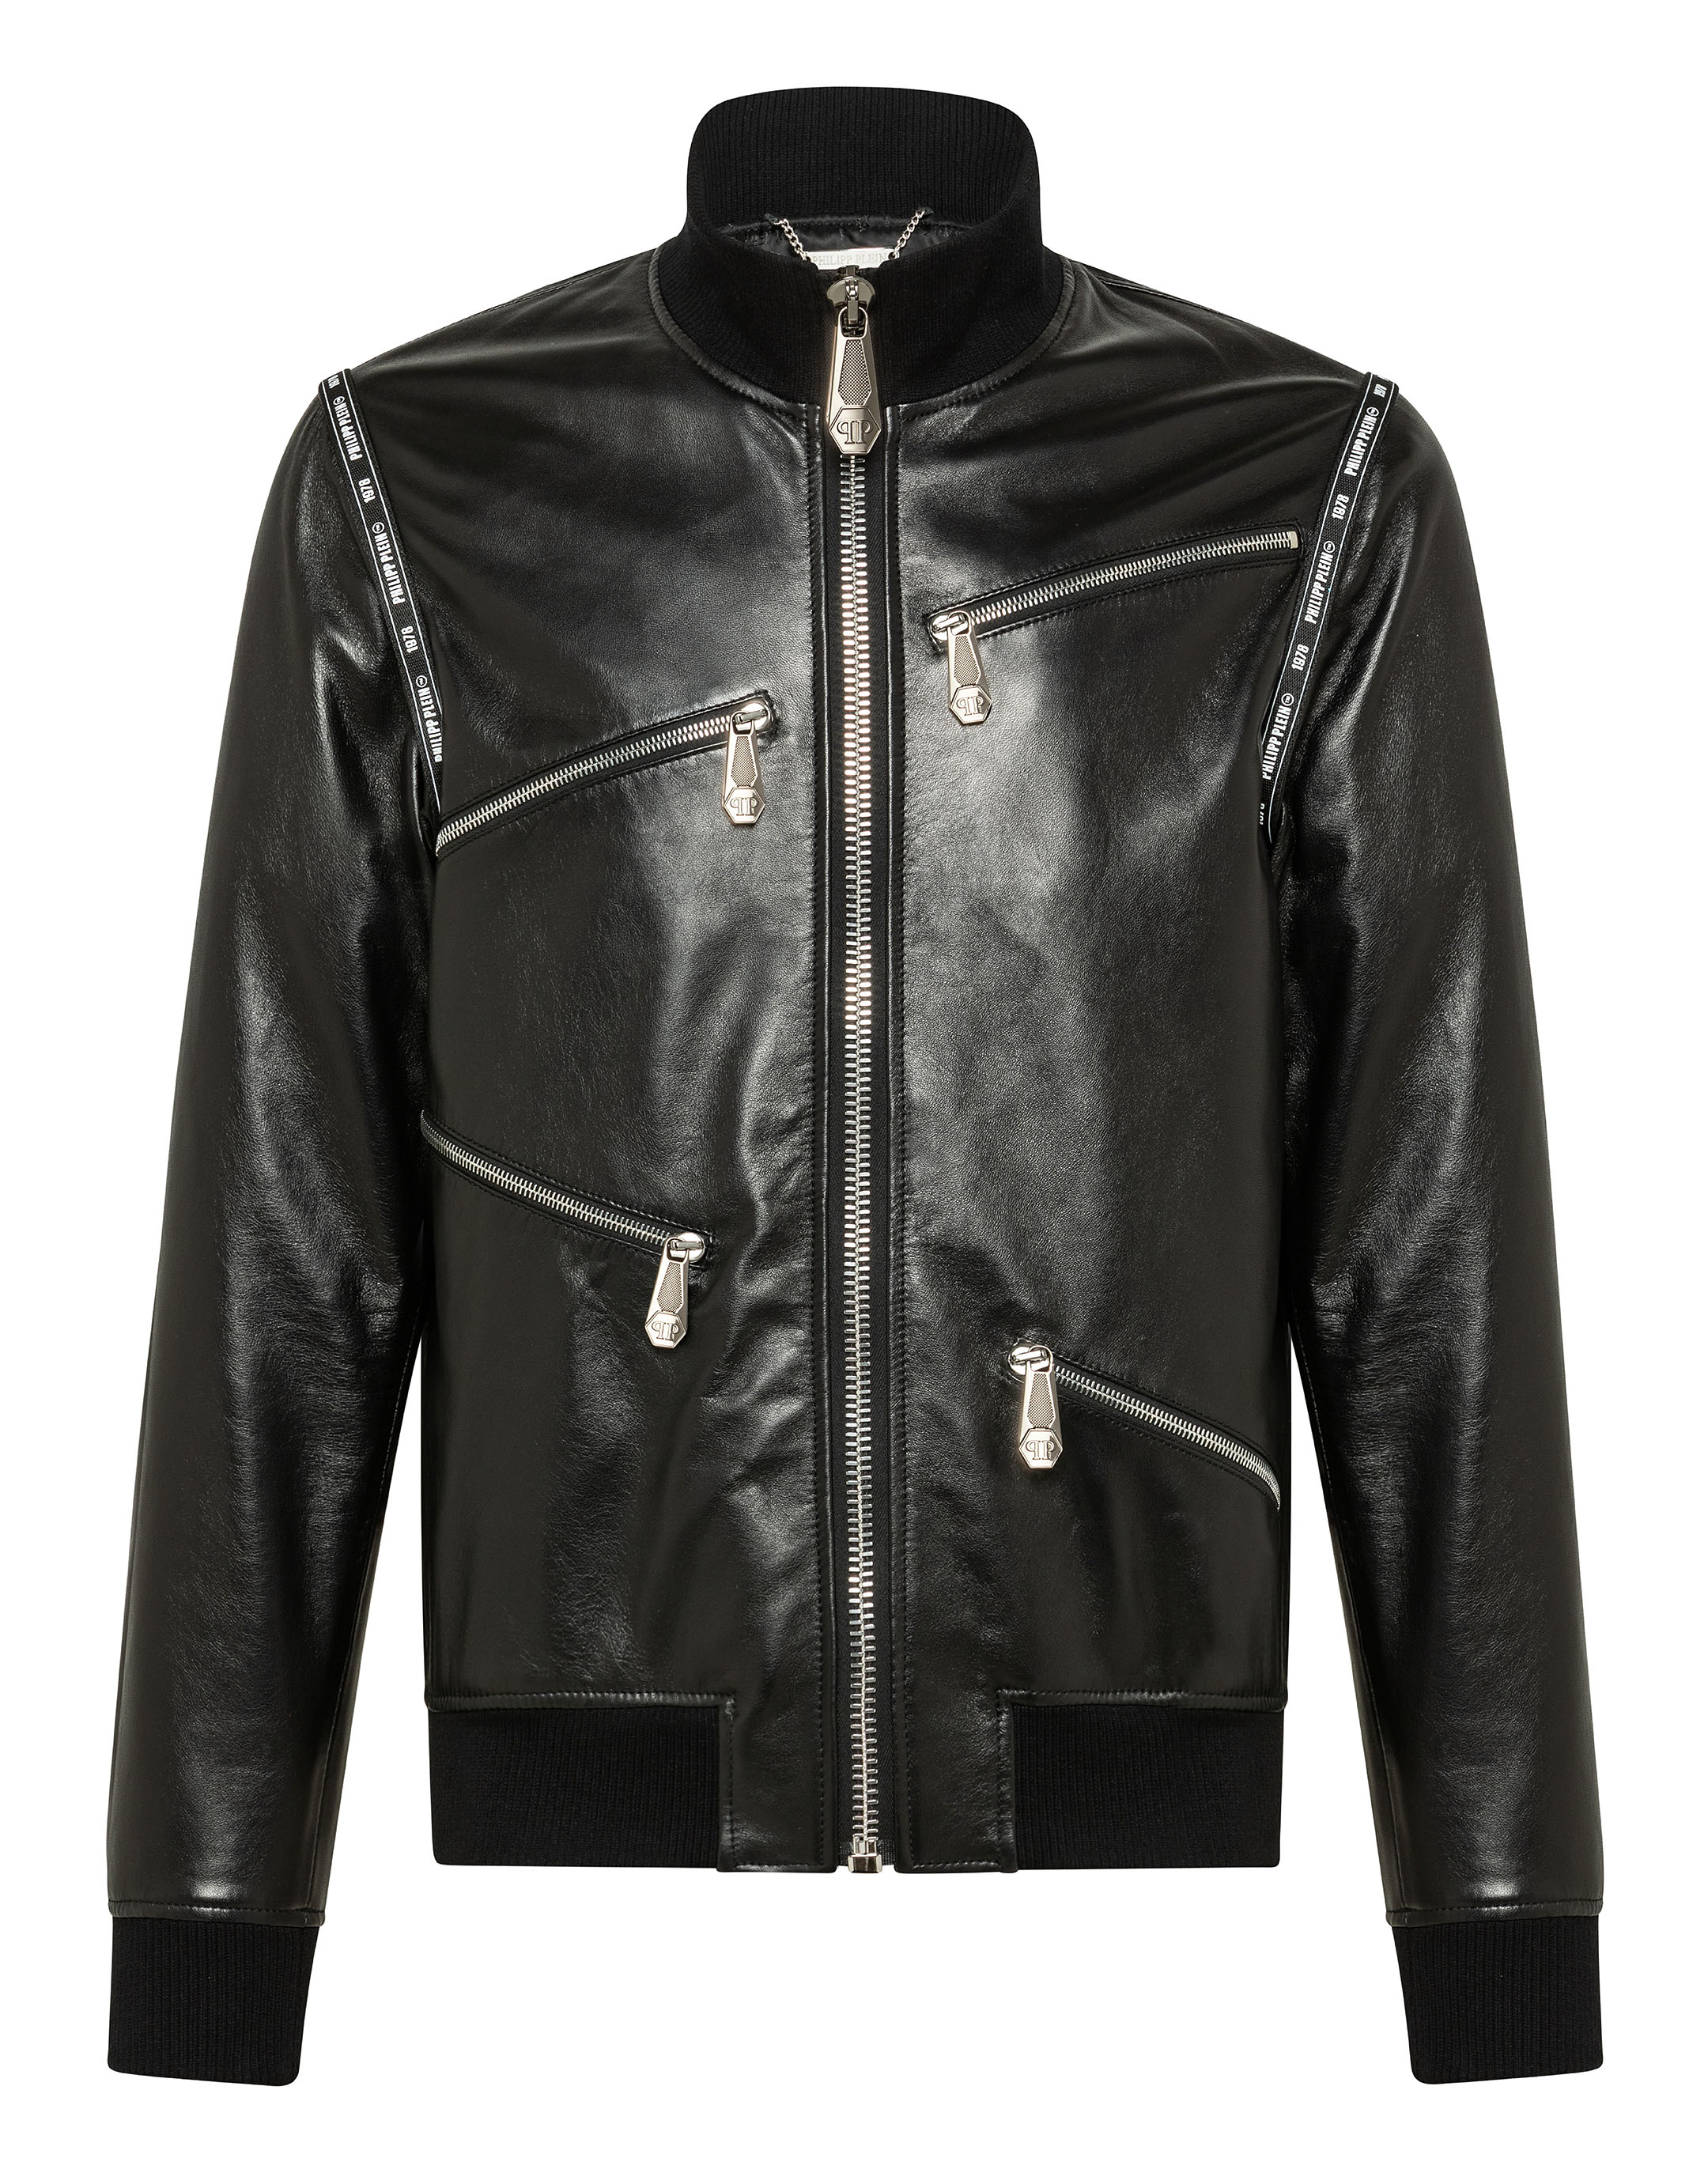 98a023e416 Leather Bomber Philipp Plein TM | Philipp Plein